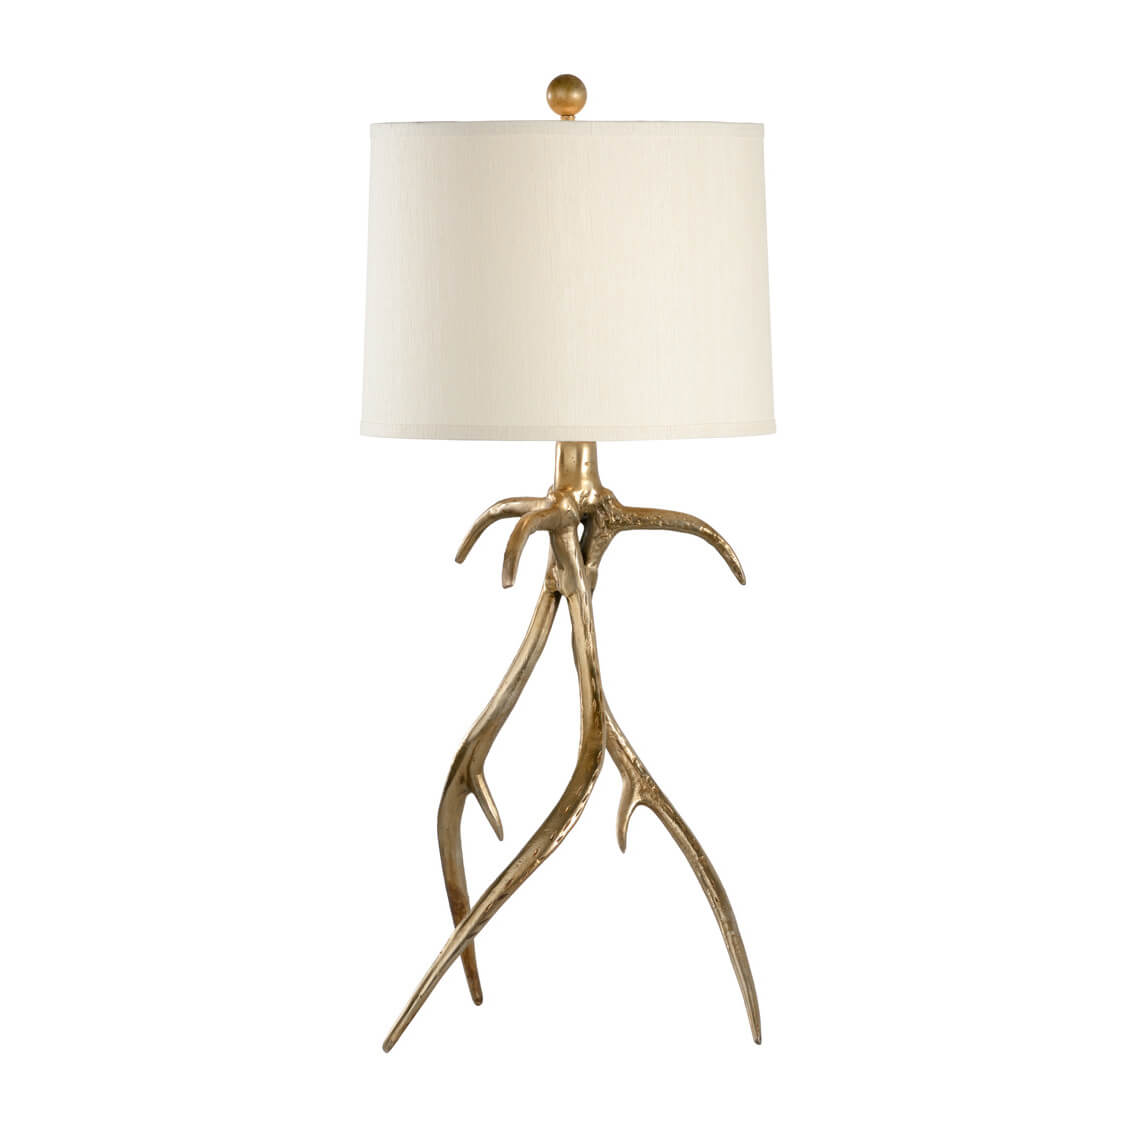 Antler Form Table Lamp